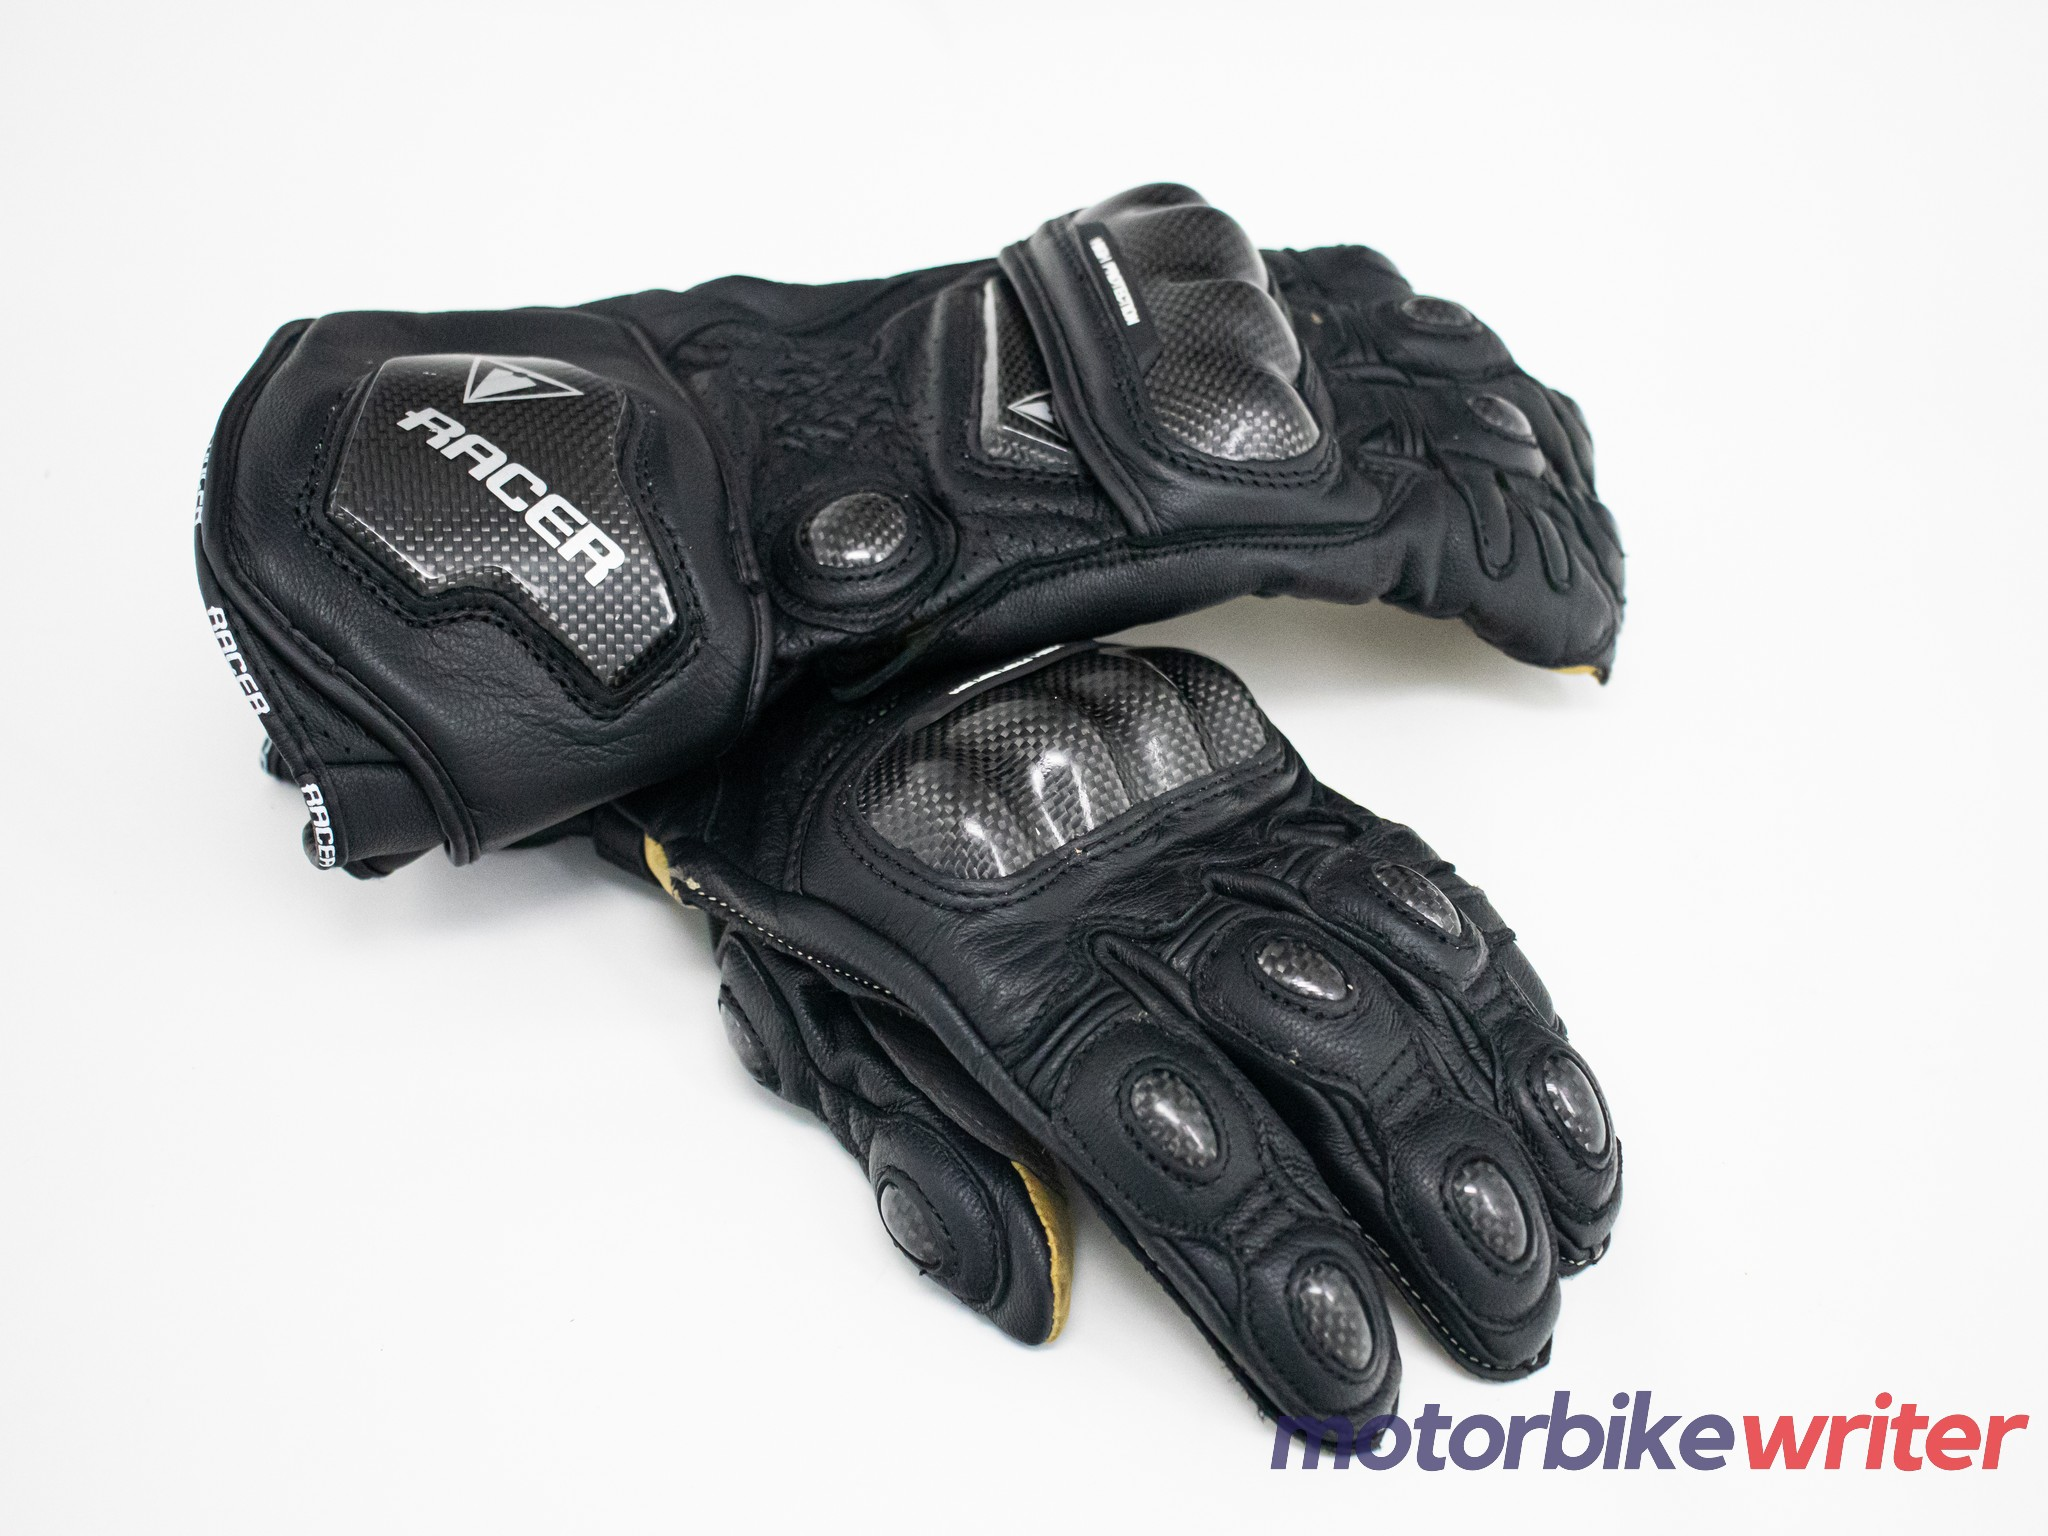 Top view of the High Racer gloves